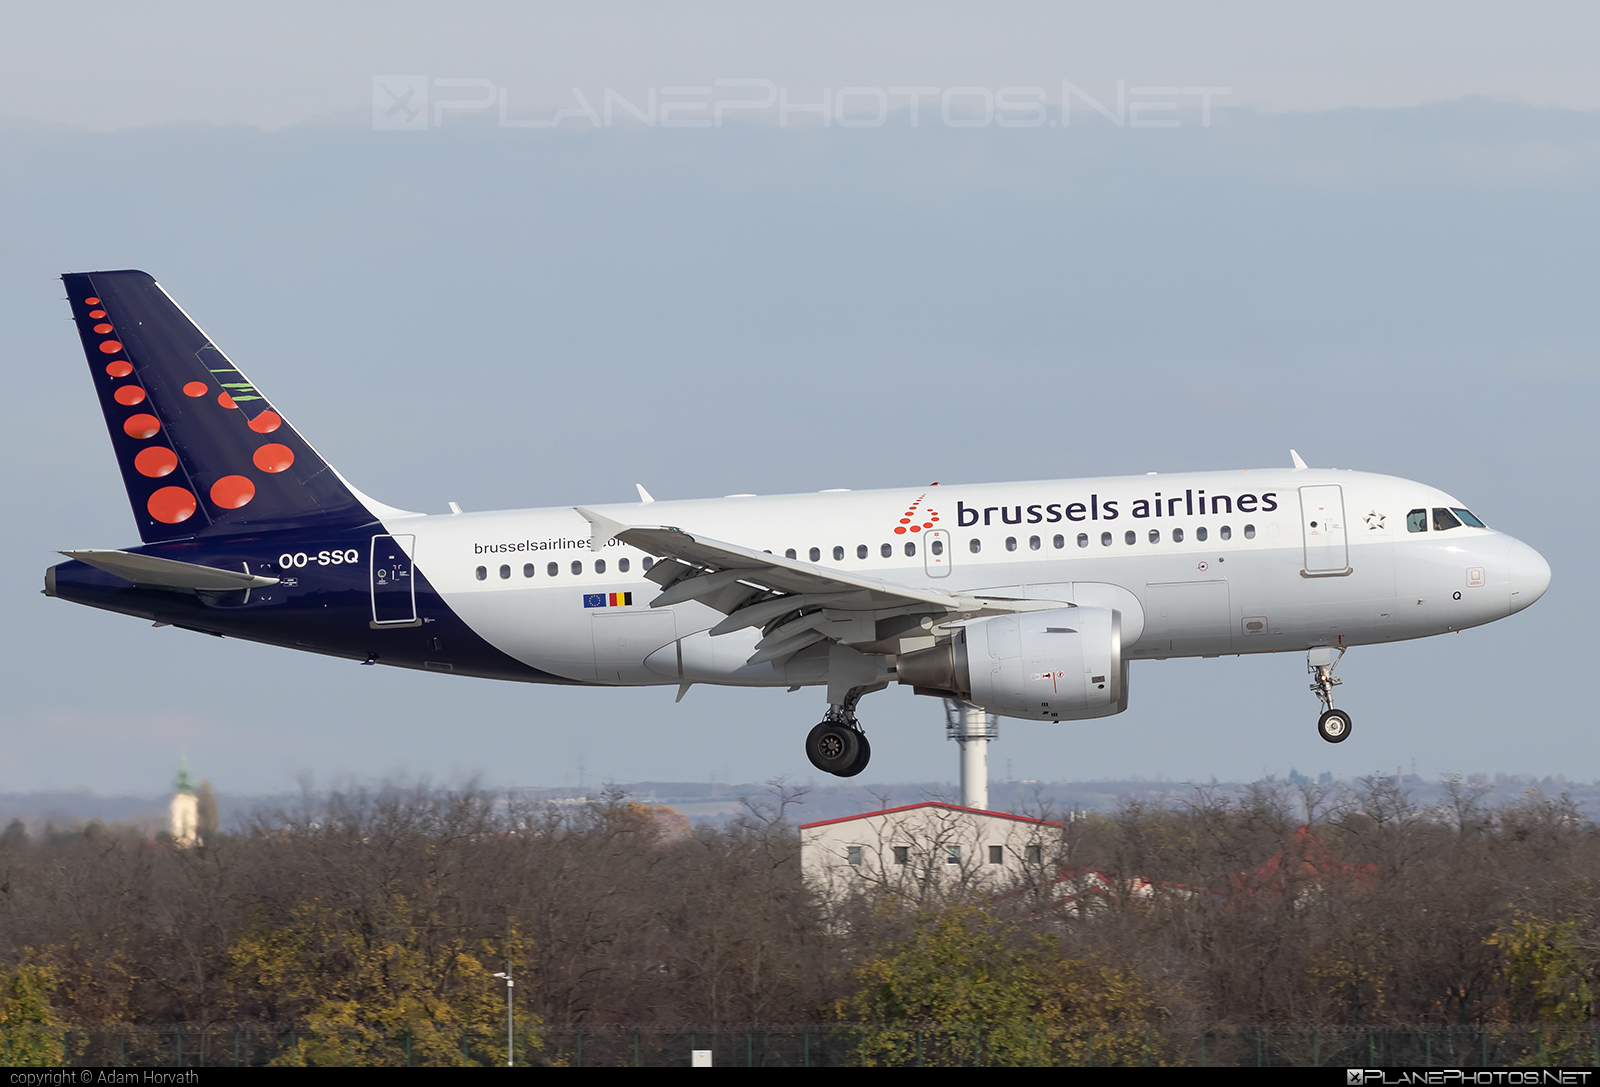 Airbus A319-111 - OO-SSQ operated by Brussels Airlines #a319 #a320family #airbus #airbus319 #brusselsairlines